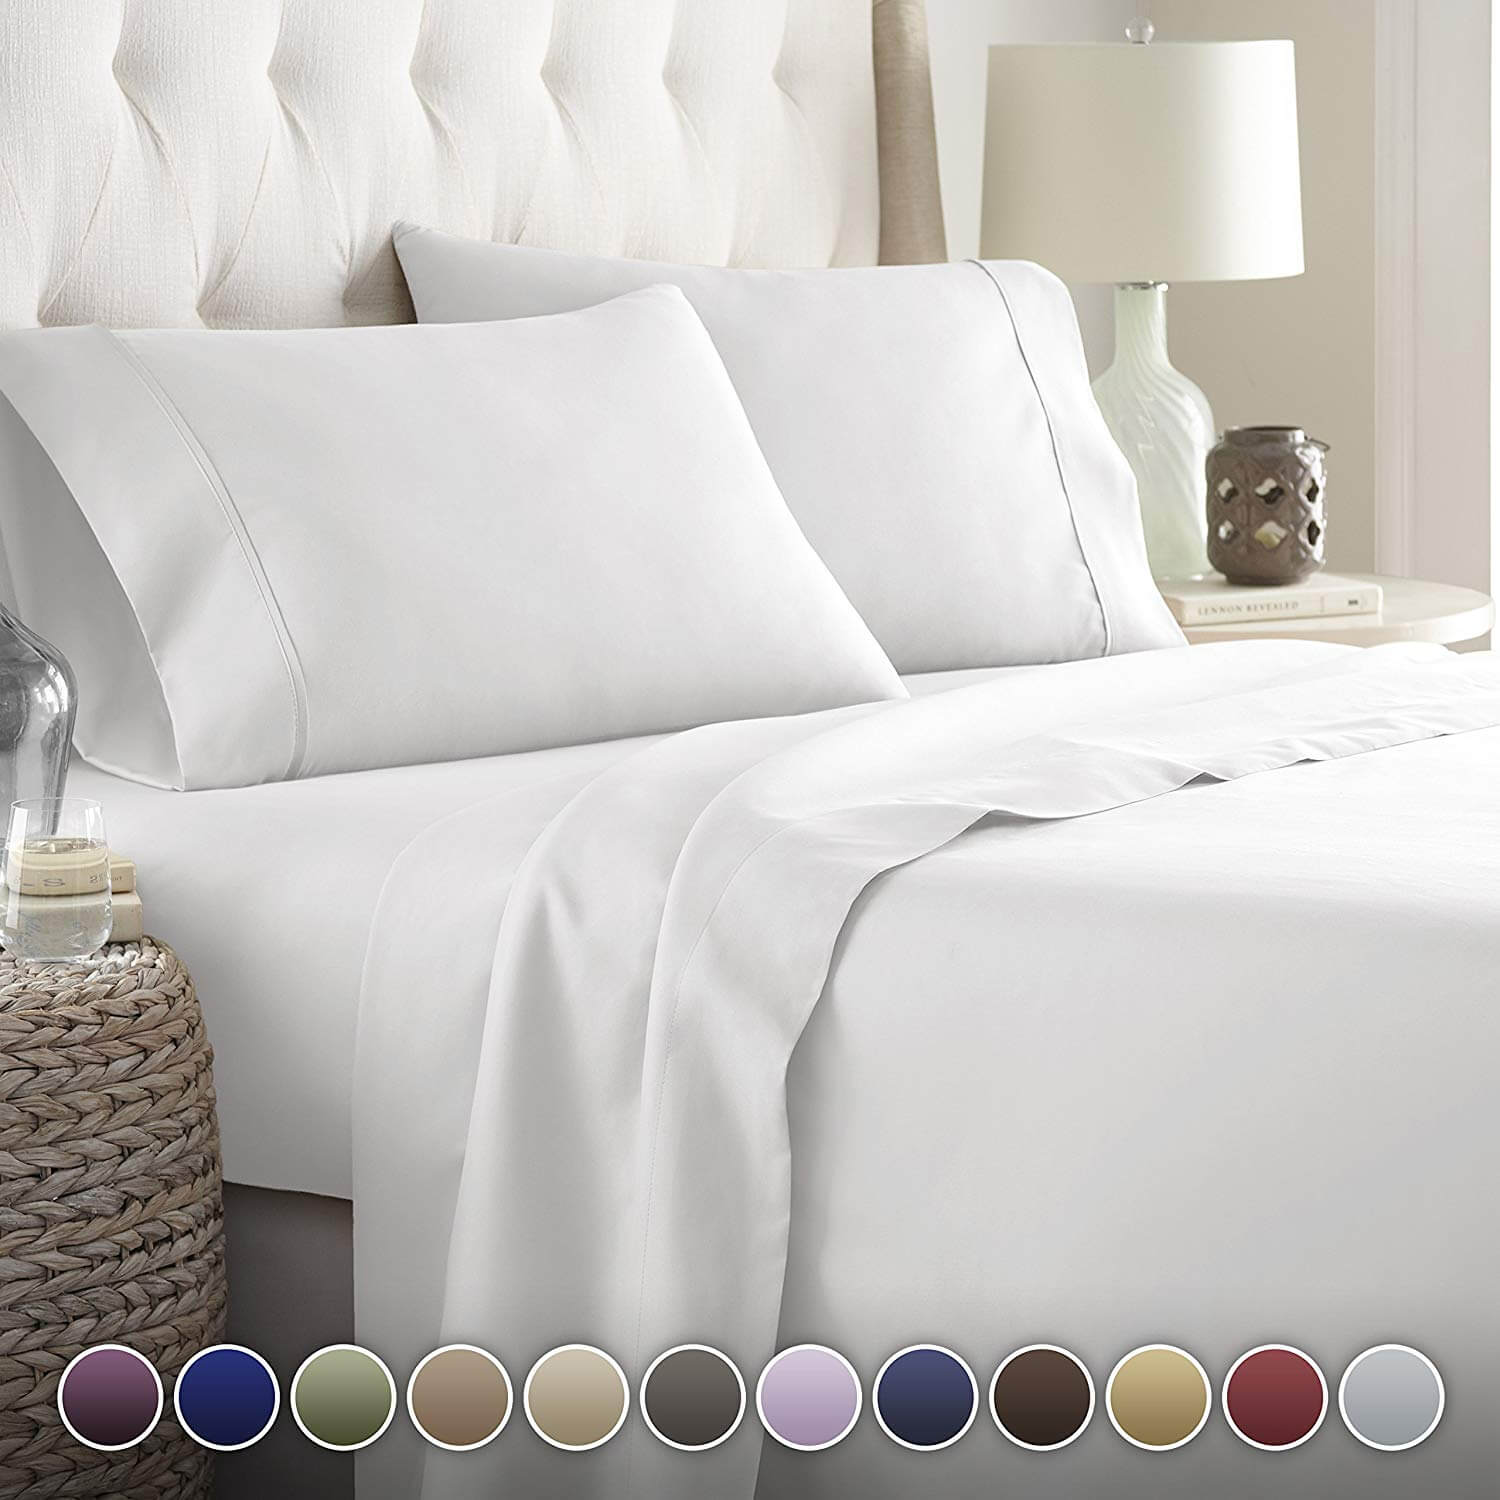 Top 10 Best King Size Bed Sheets In Reviews